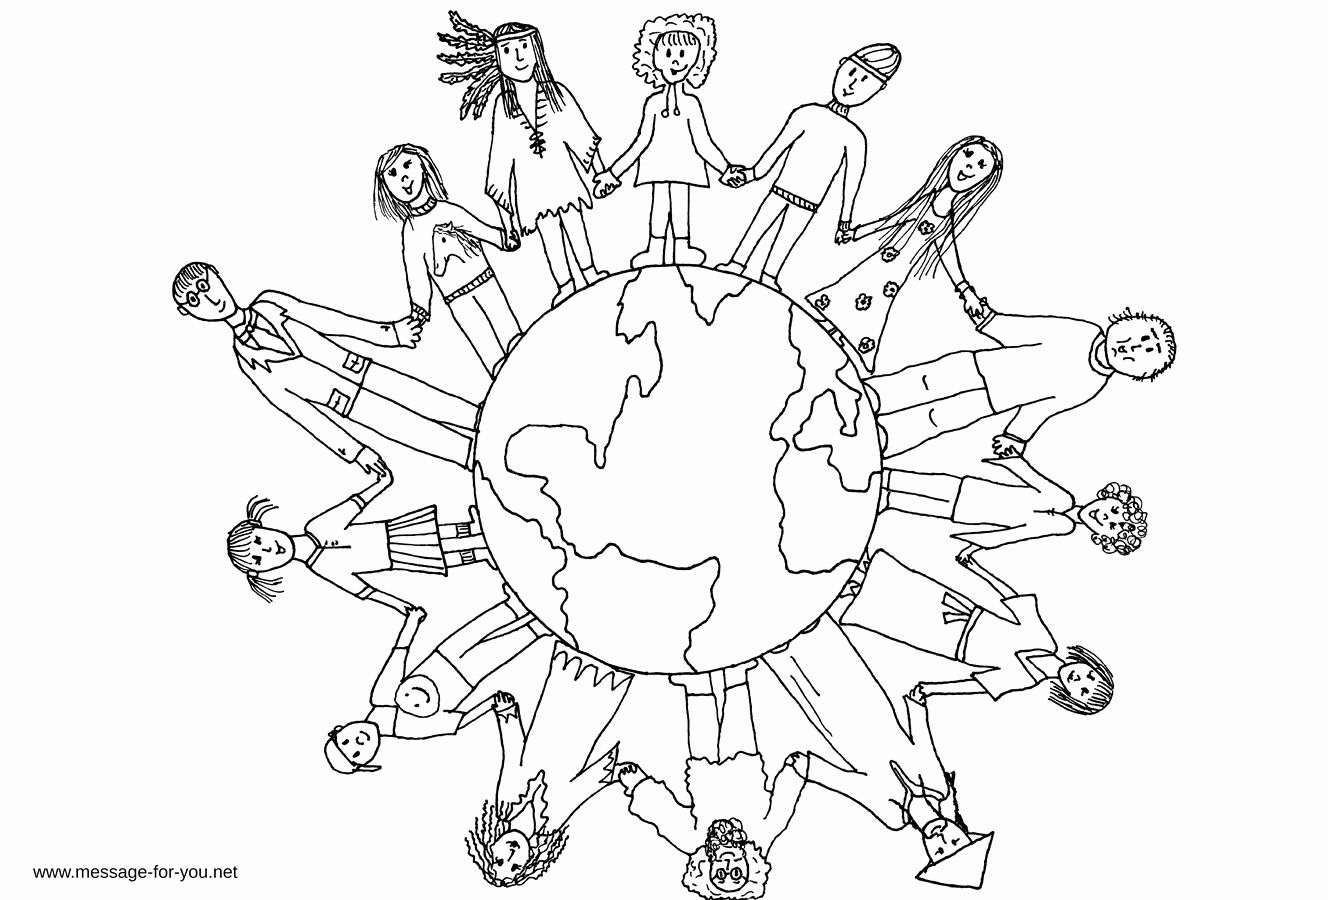 World Map Coloring Page Printable Elegant Coloring Page World Map